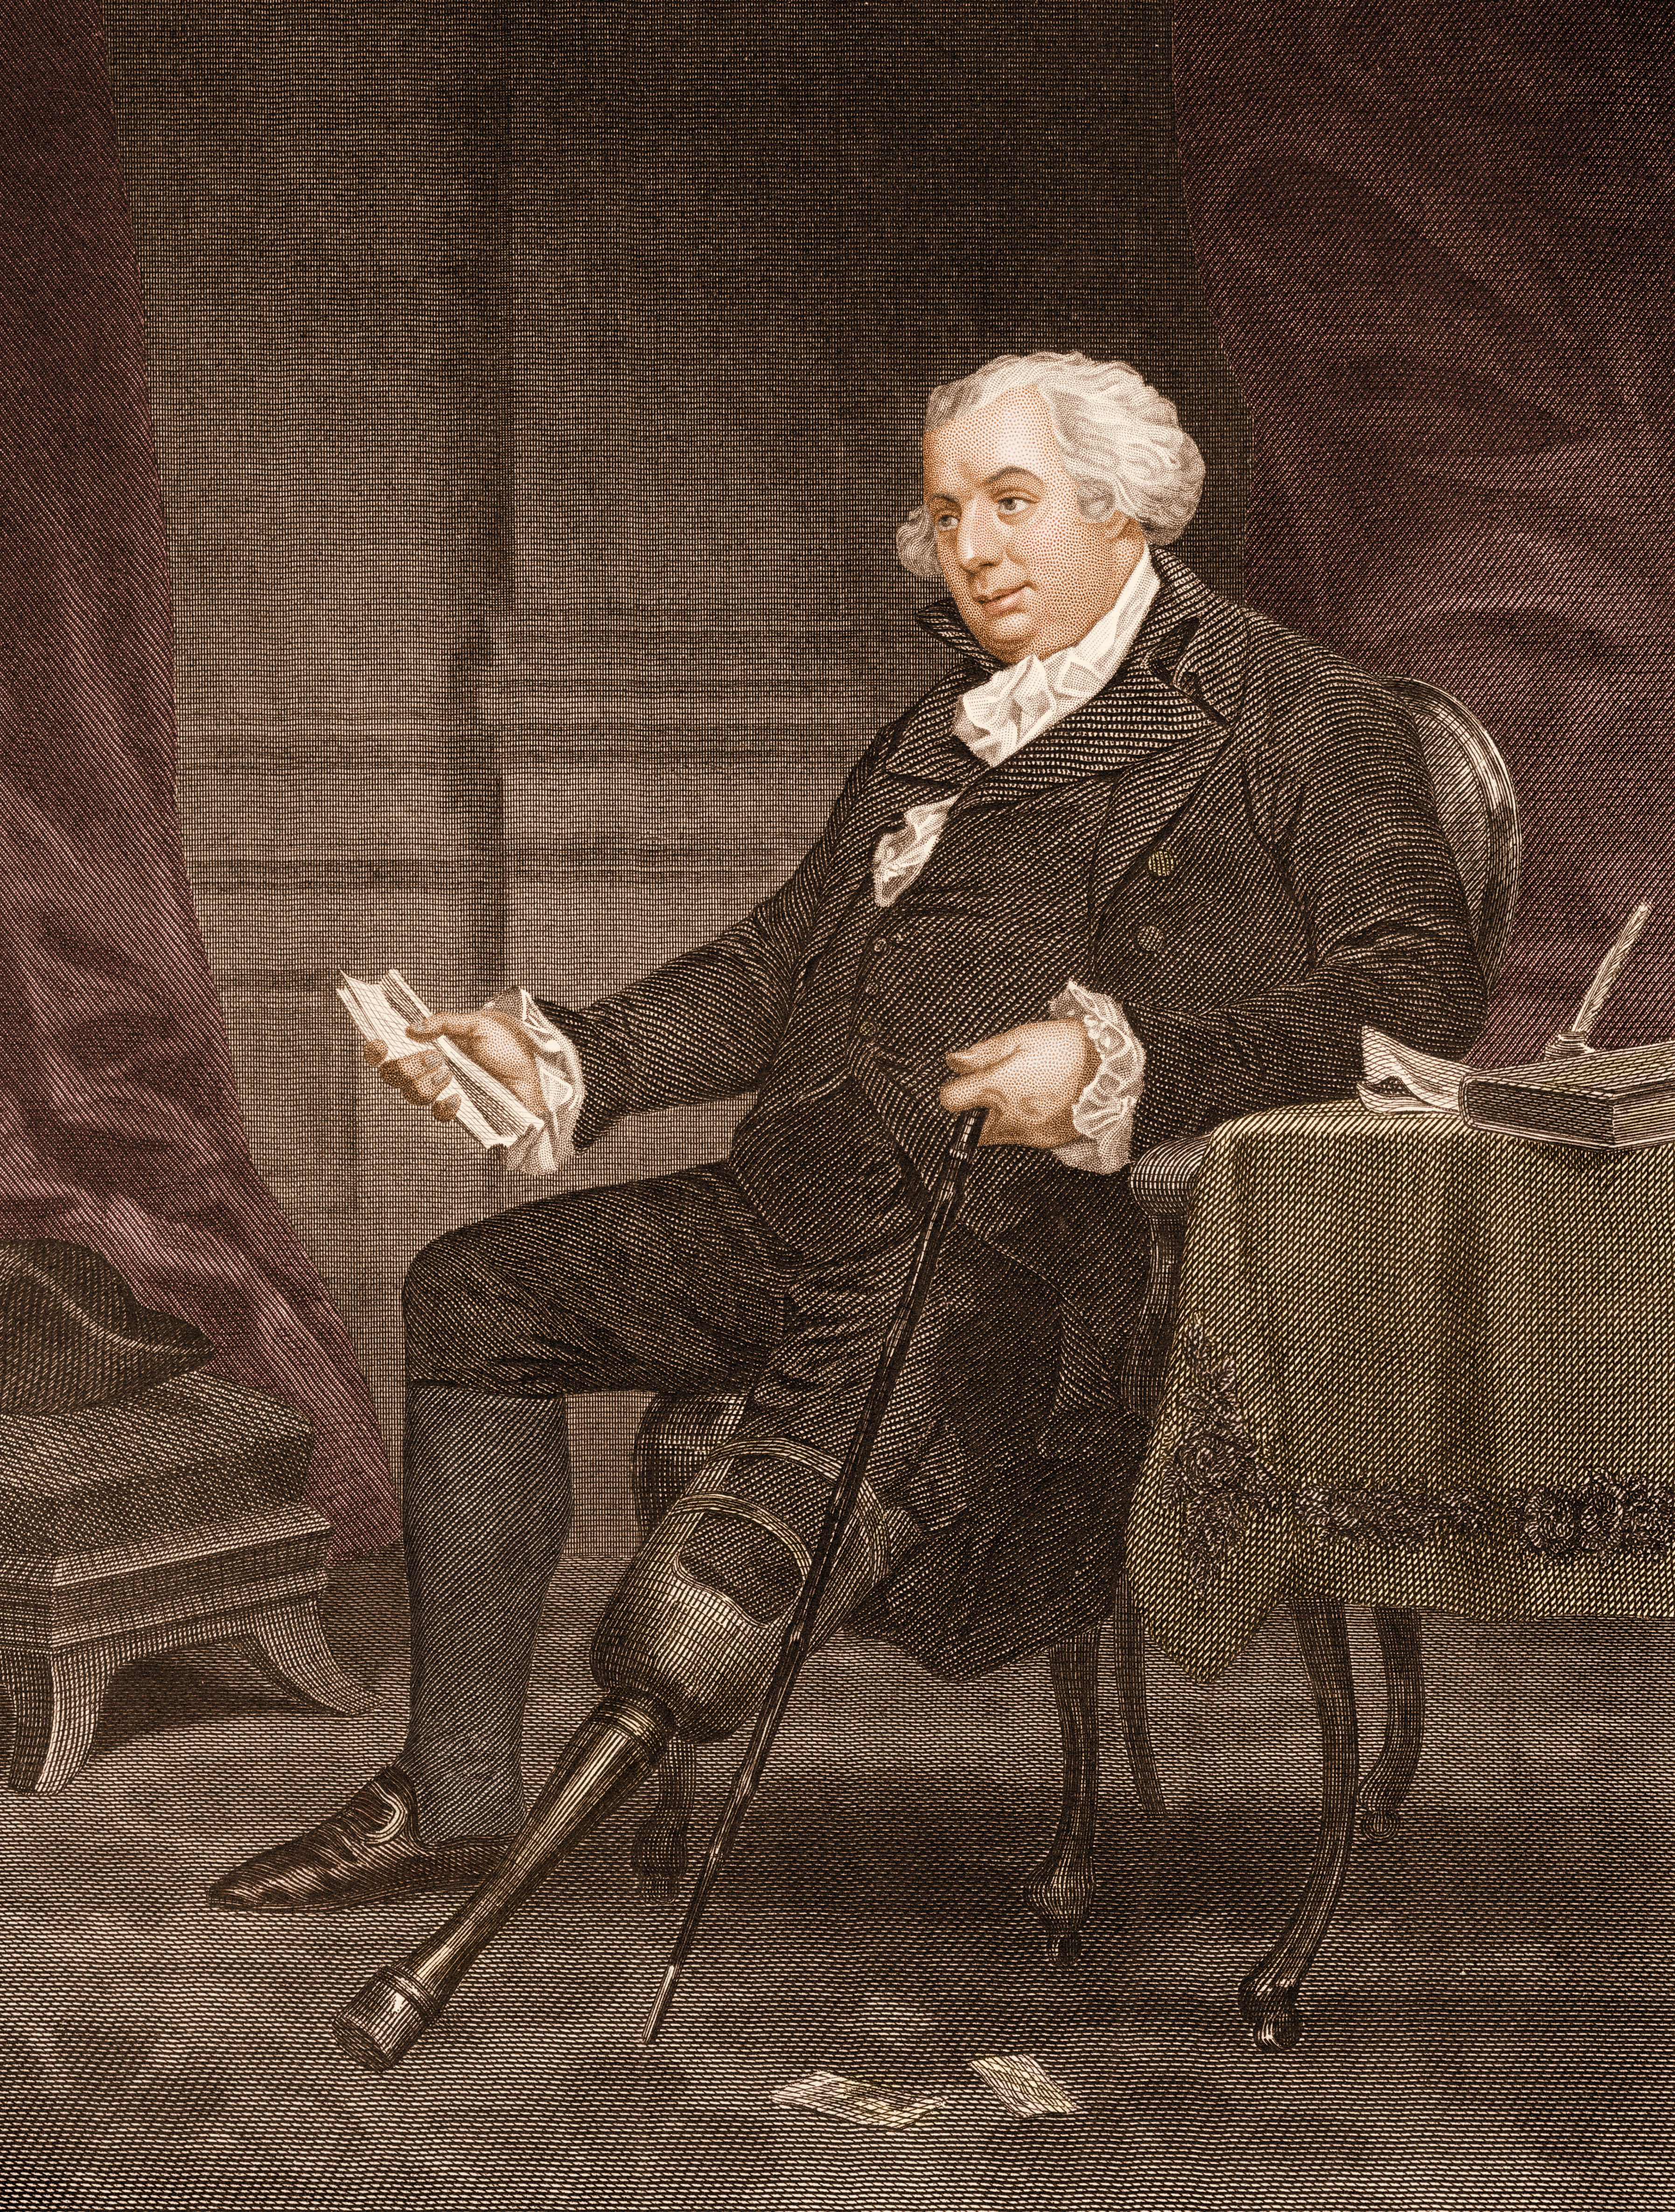 10 Reasons Why Gouverneur Morris Was the Oddest Founding Father